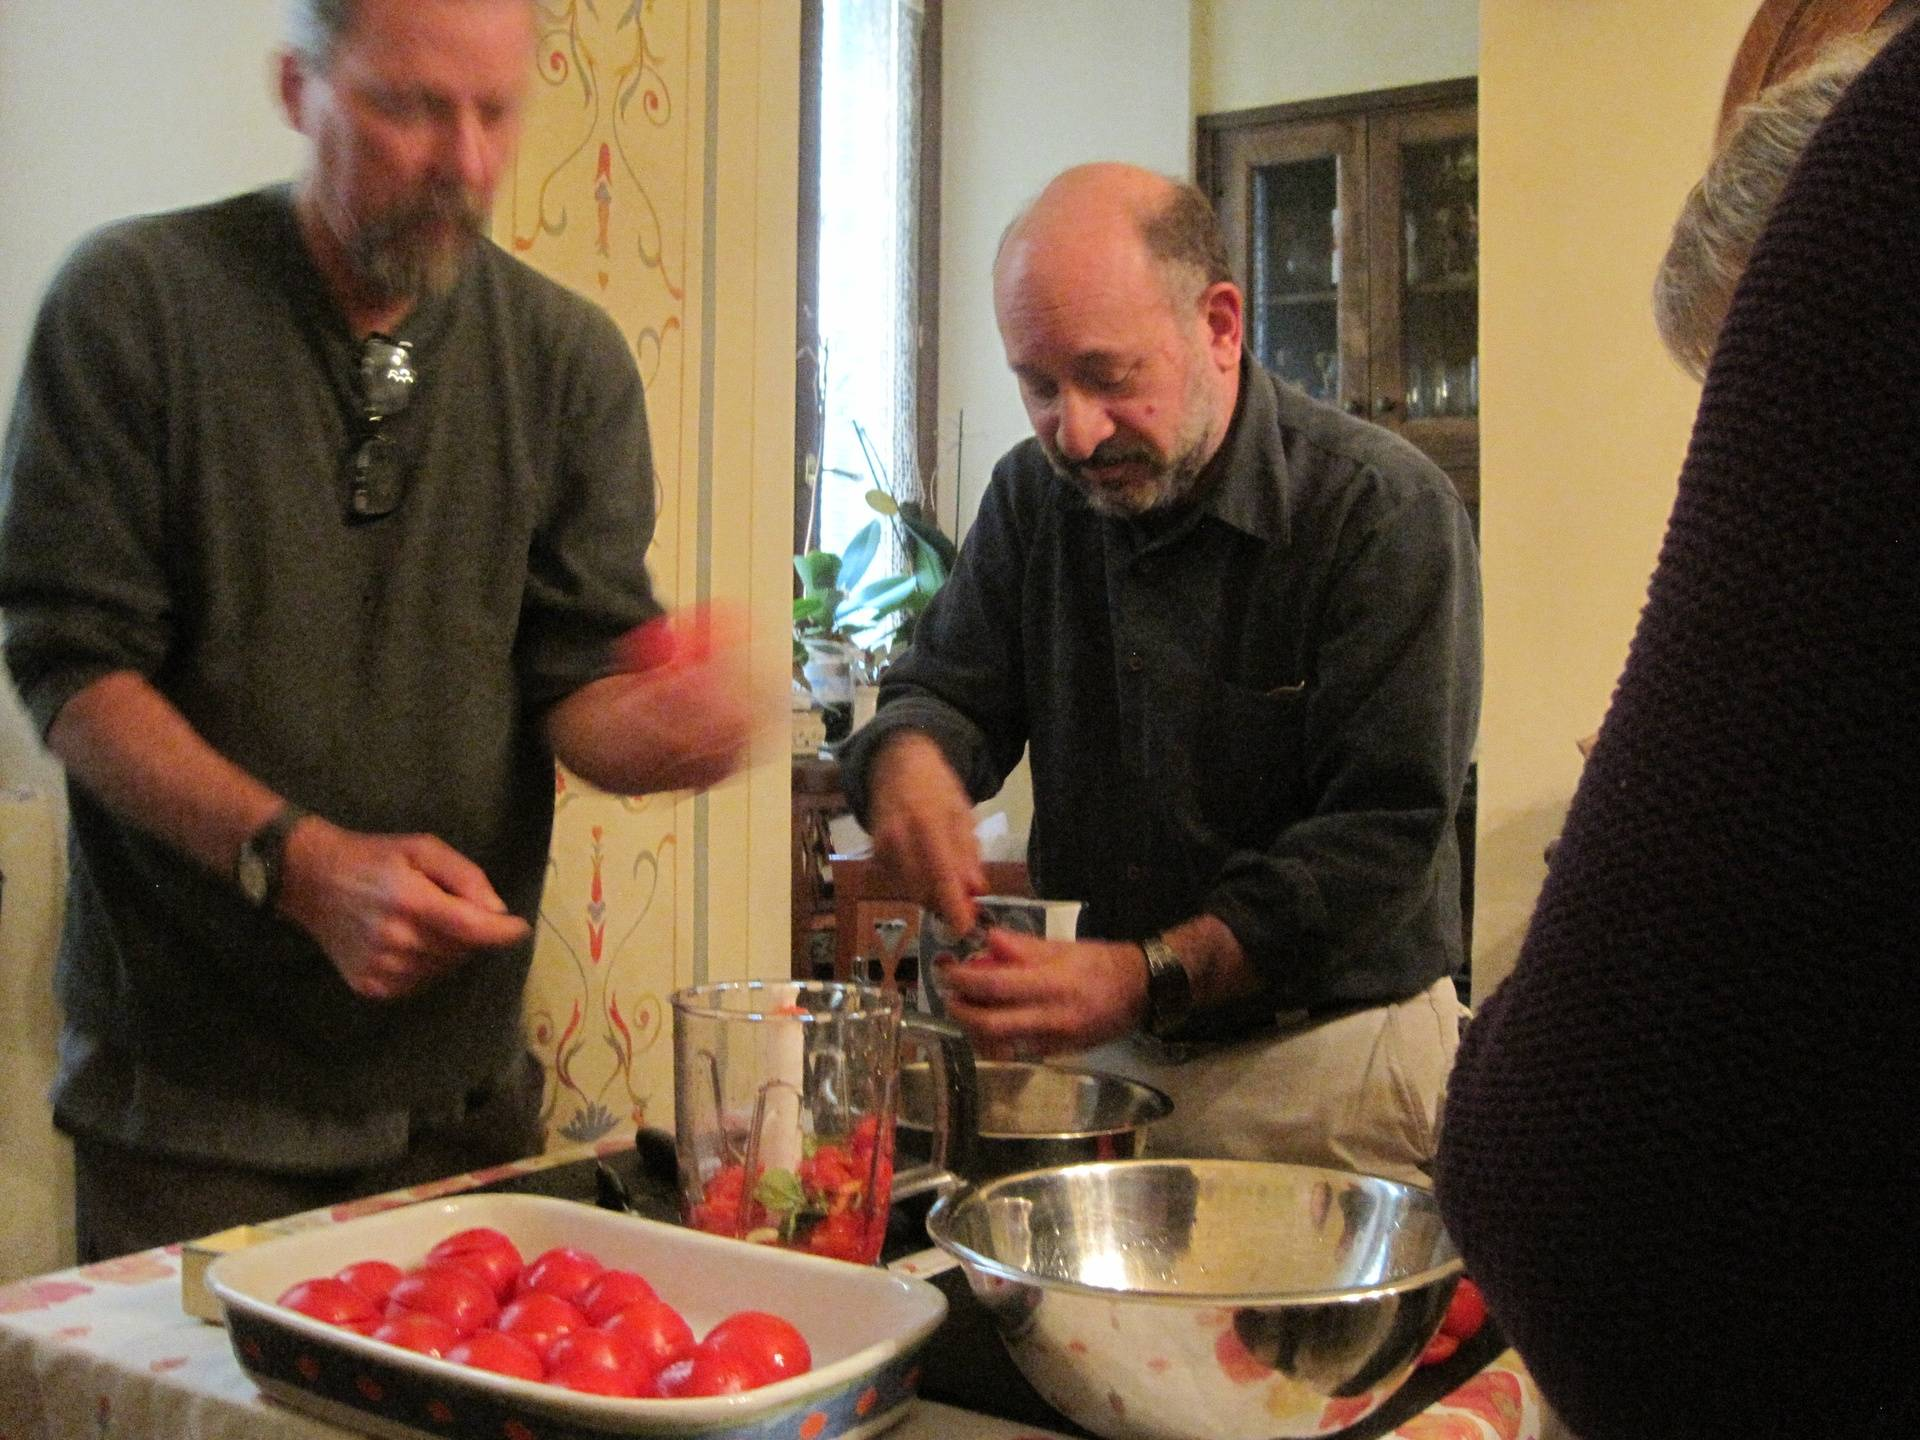 Preparing tomatoes for stuffing